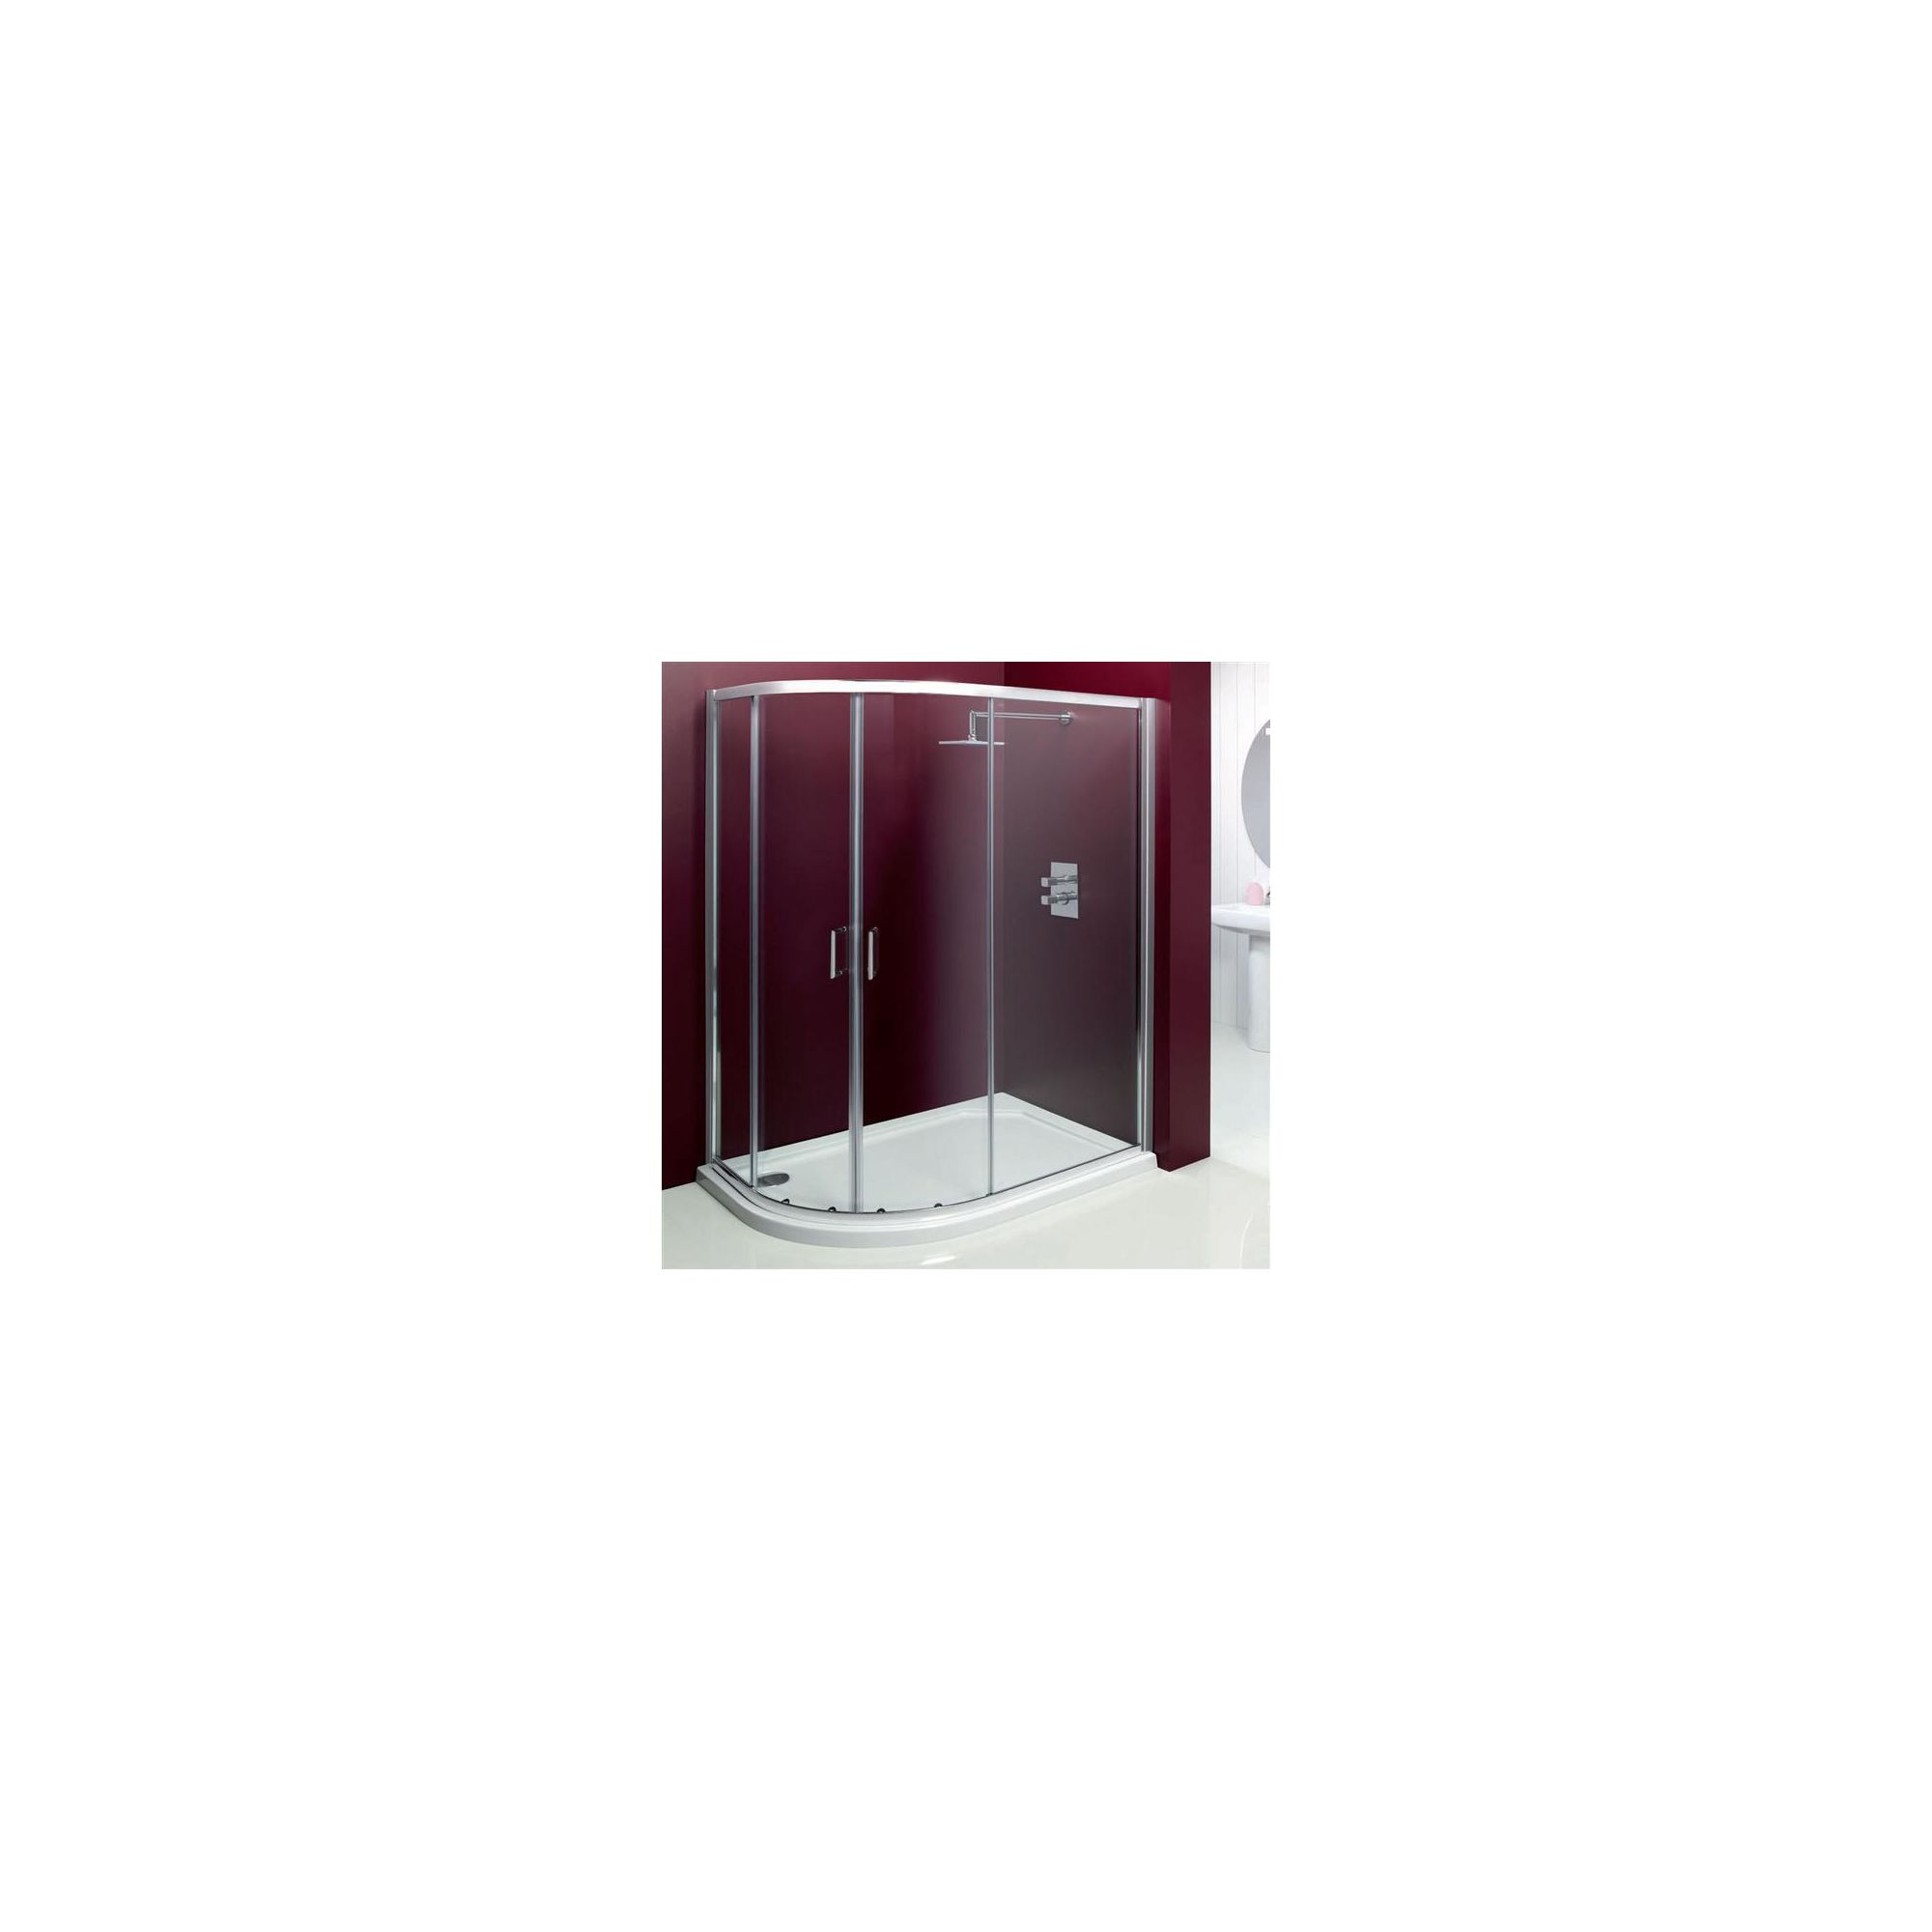 Merlyn Vivid Entree Offset Quadrant Shower Enclosure, 1200mm x 800mm, Left Handed, Low Profile Tray, 6mm Glass at Tesco Direct